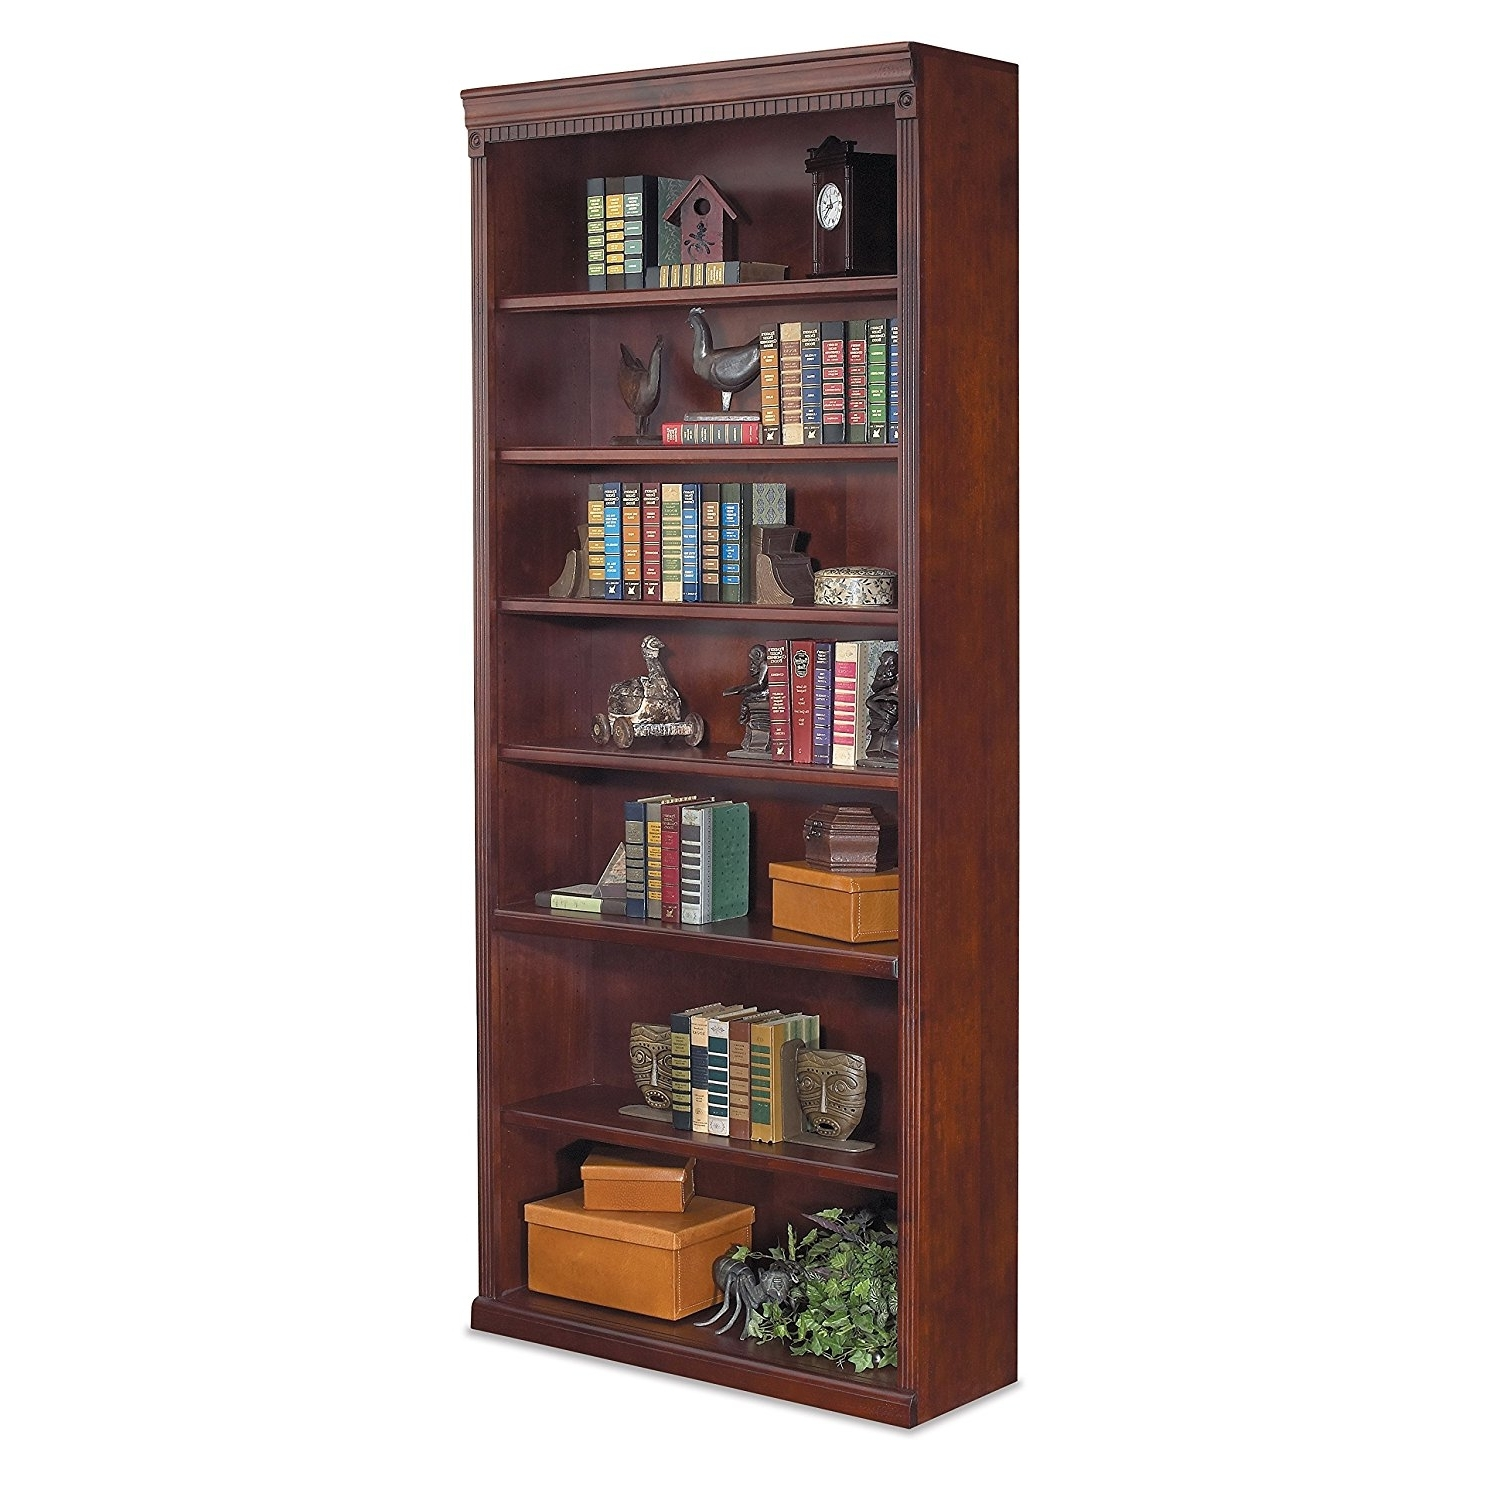 84 Inch Tall Bookcases For Most Recently Released Amazon: Martin Furniture Huntington Club Office Open Bookcase (View 1 of 15)